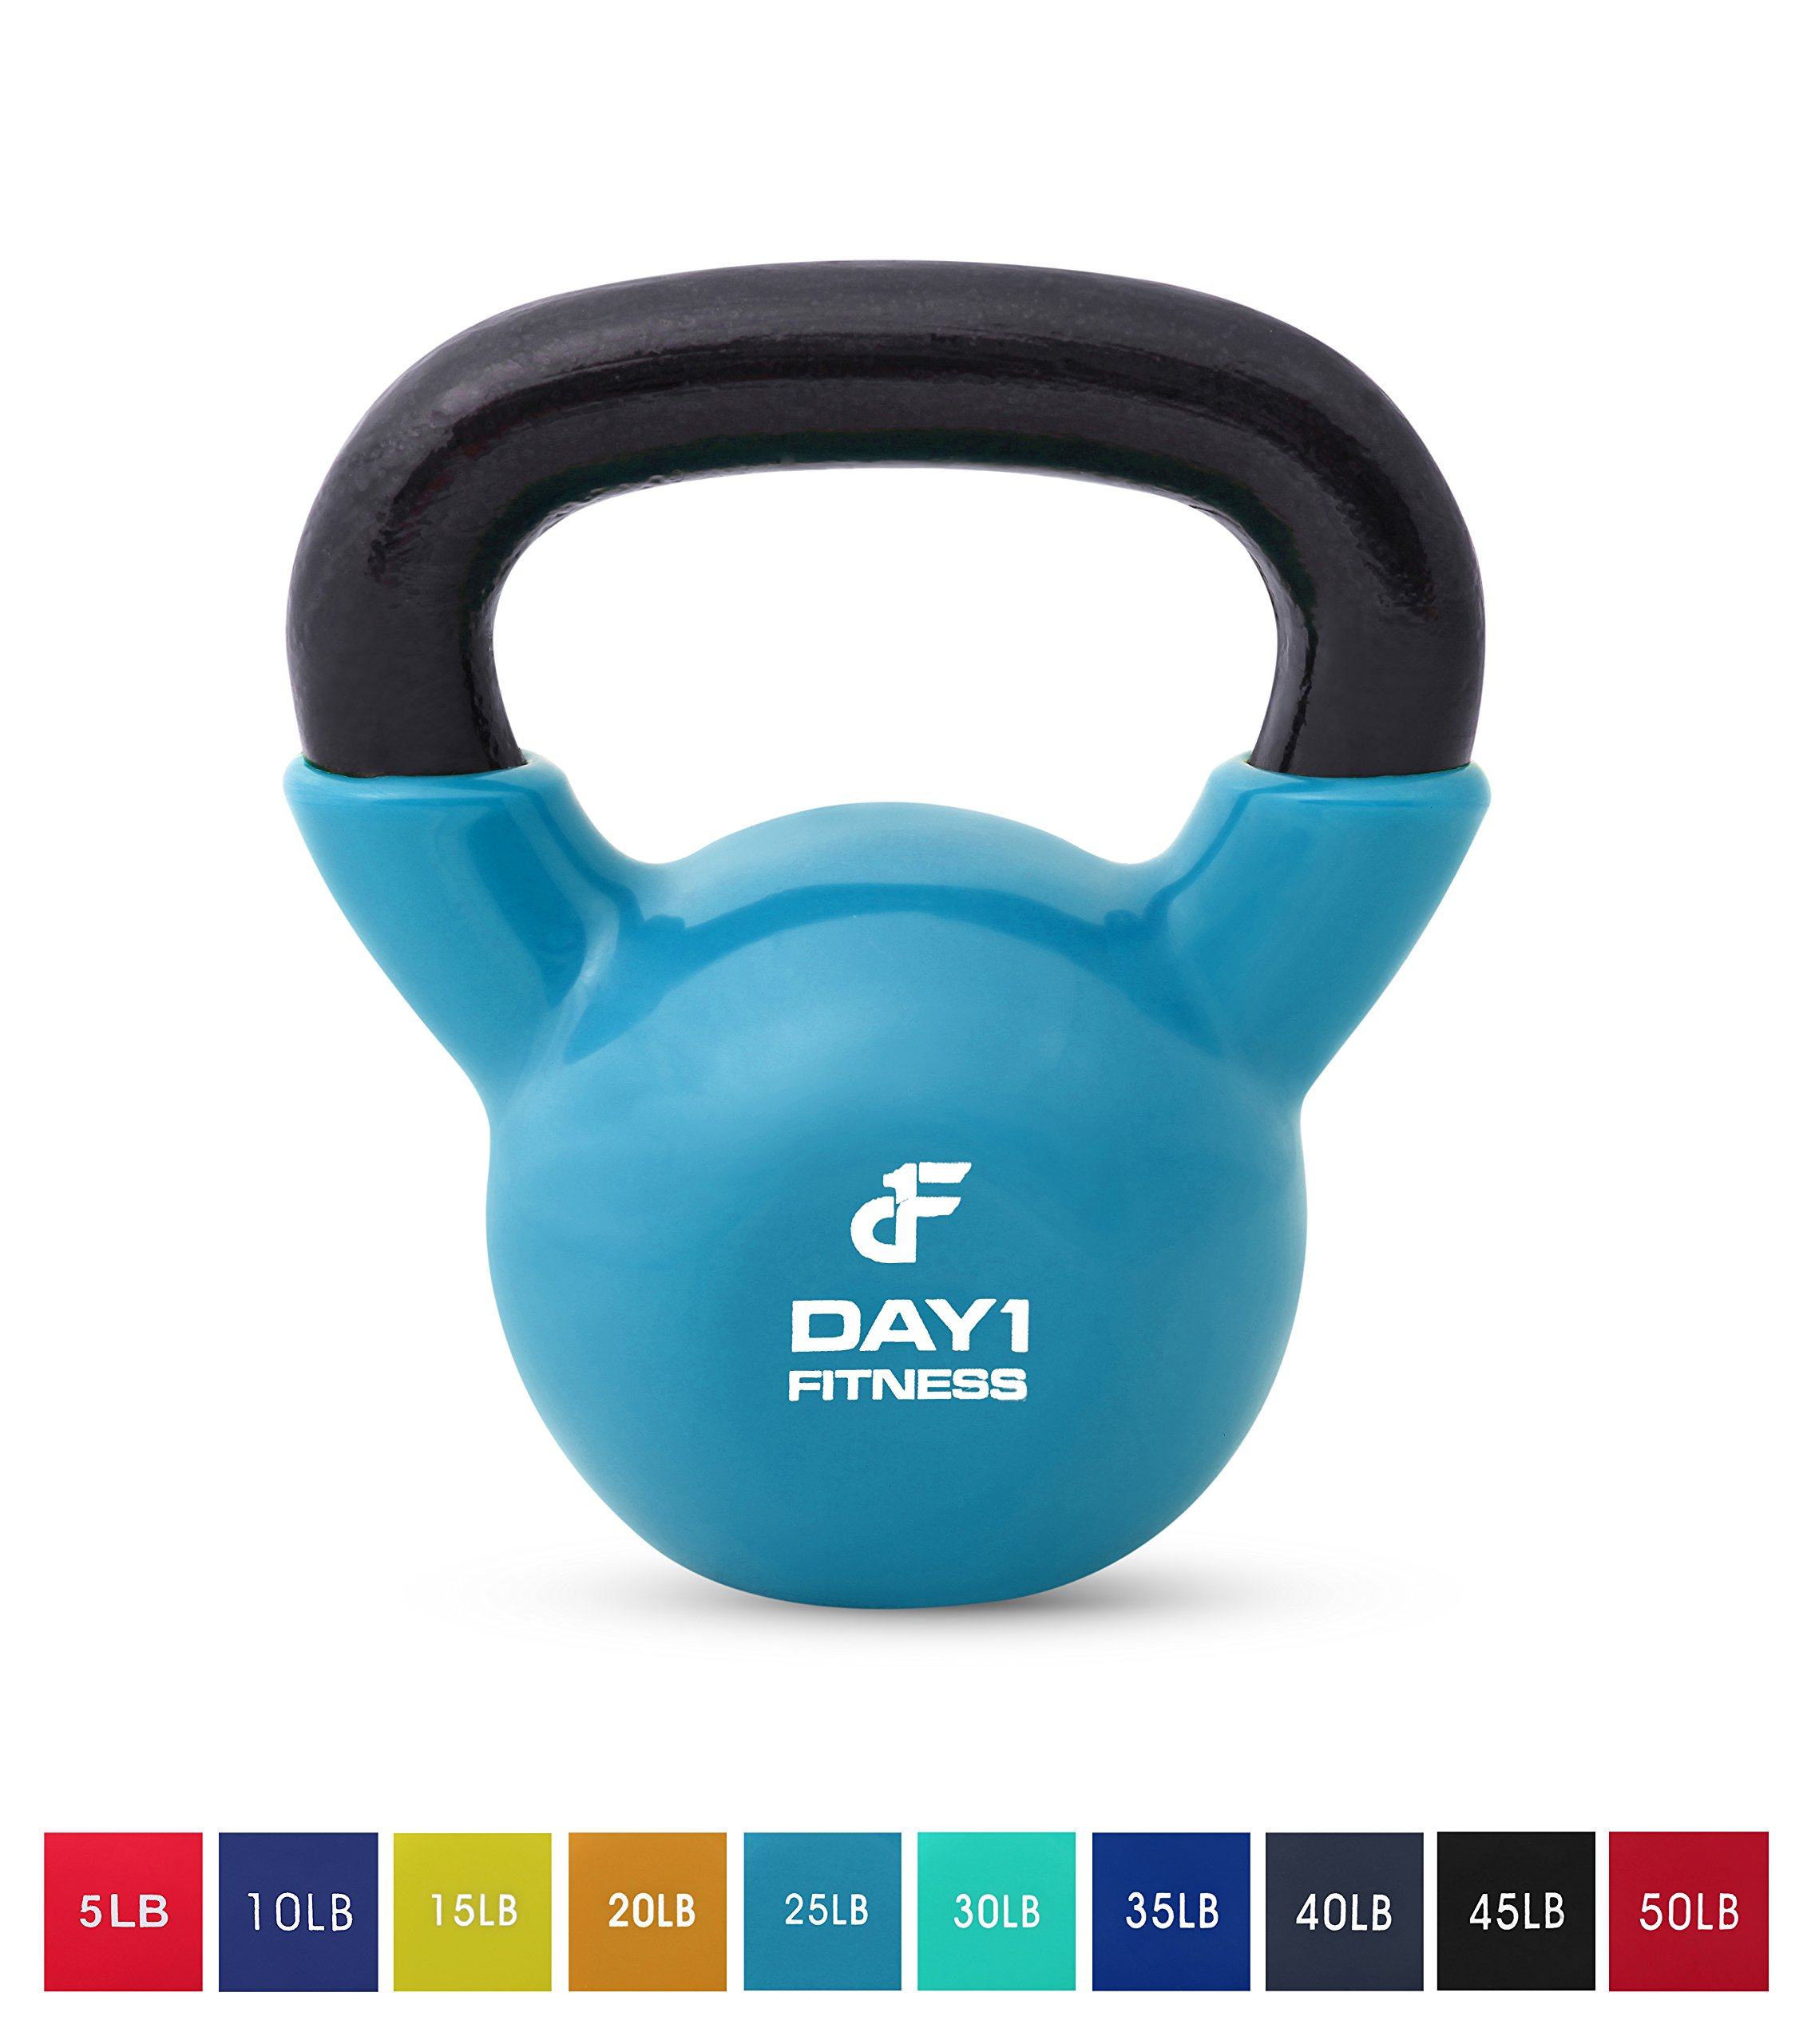 Day 1 Fitness Kettlebell Weights Vinyl Coated Iron 25 Pounds - Coated for Floor and Equipment Protection, Noise Reduction - Free Weights for Ballistic, Core, Weight Training by Day 1 Fitness (Image #1)